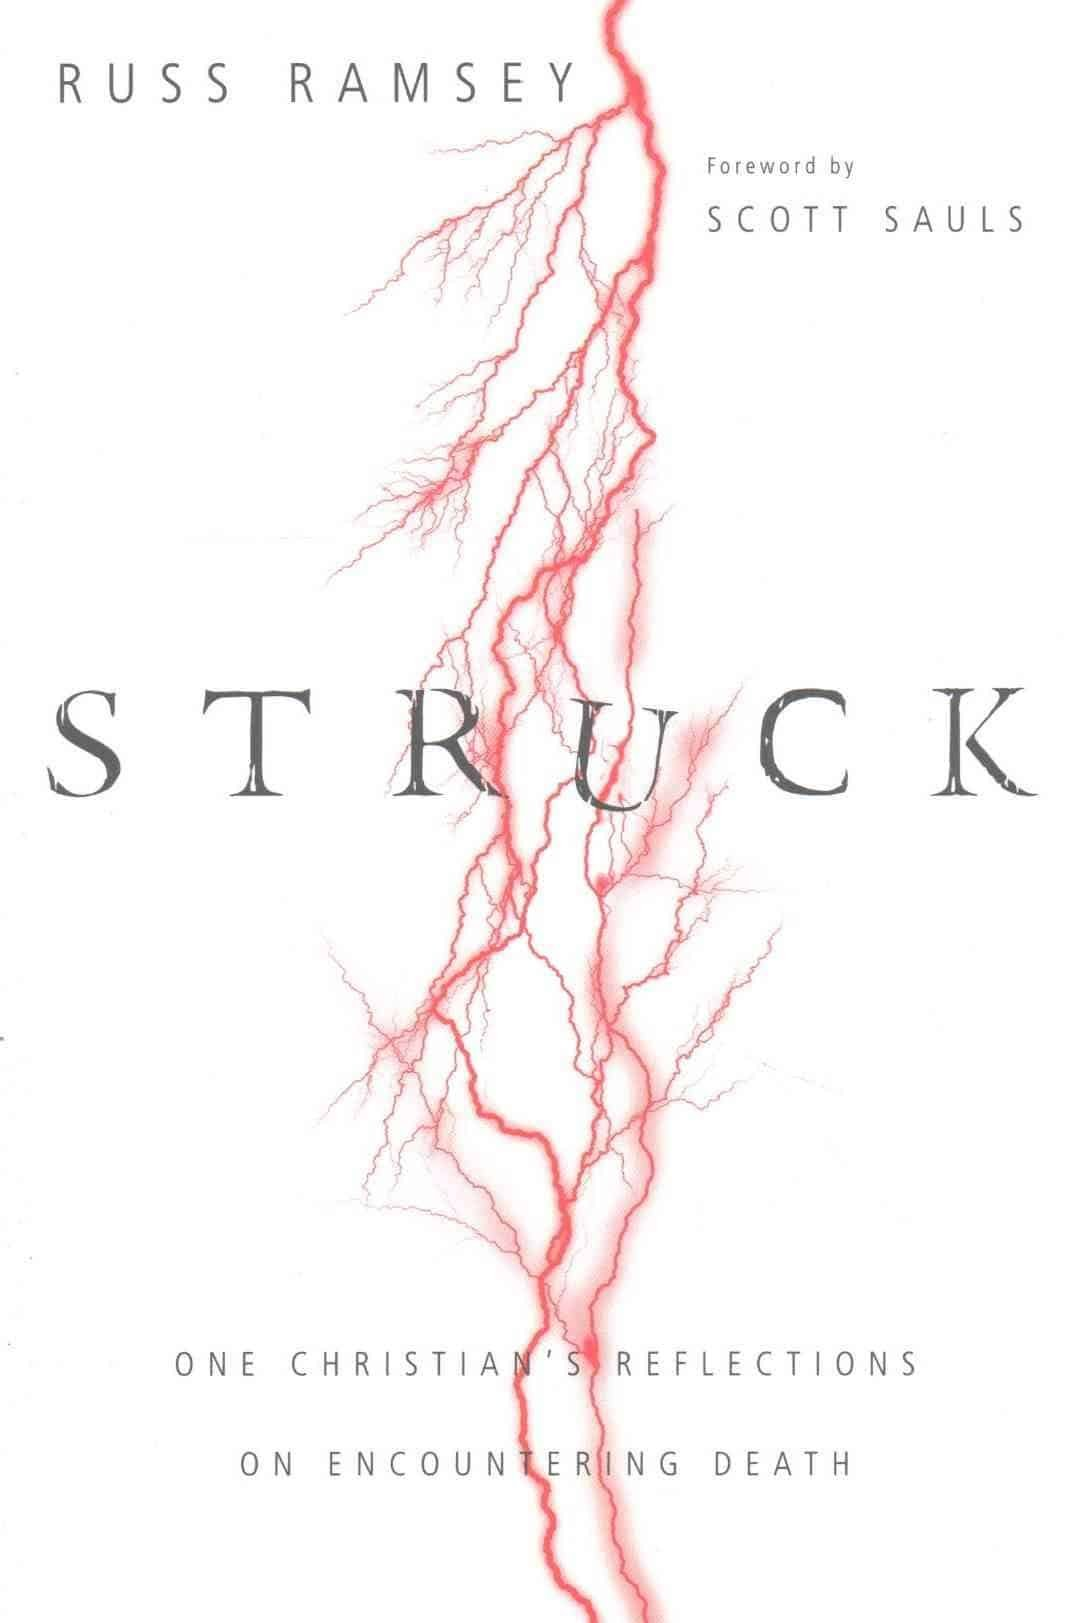 Struck: One Christian's Reflections on Encountering Death (Russ Ramsey) 1